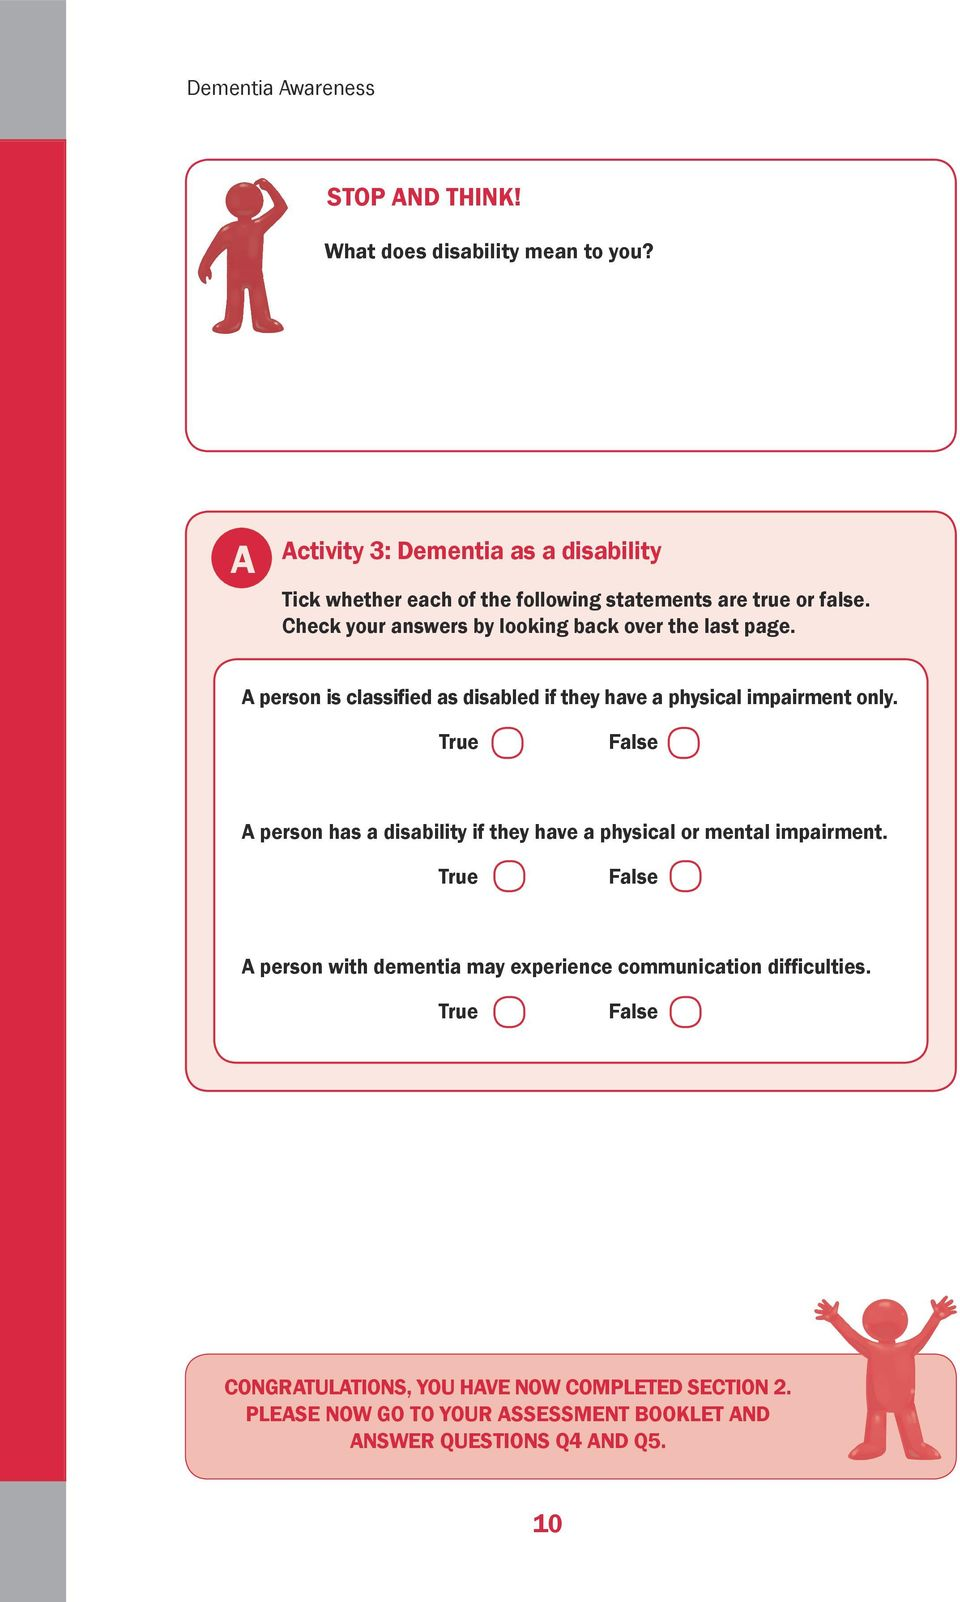 Check your answers by looking back over the last page. A person is classified as disabled if they have a physical impairment only.